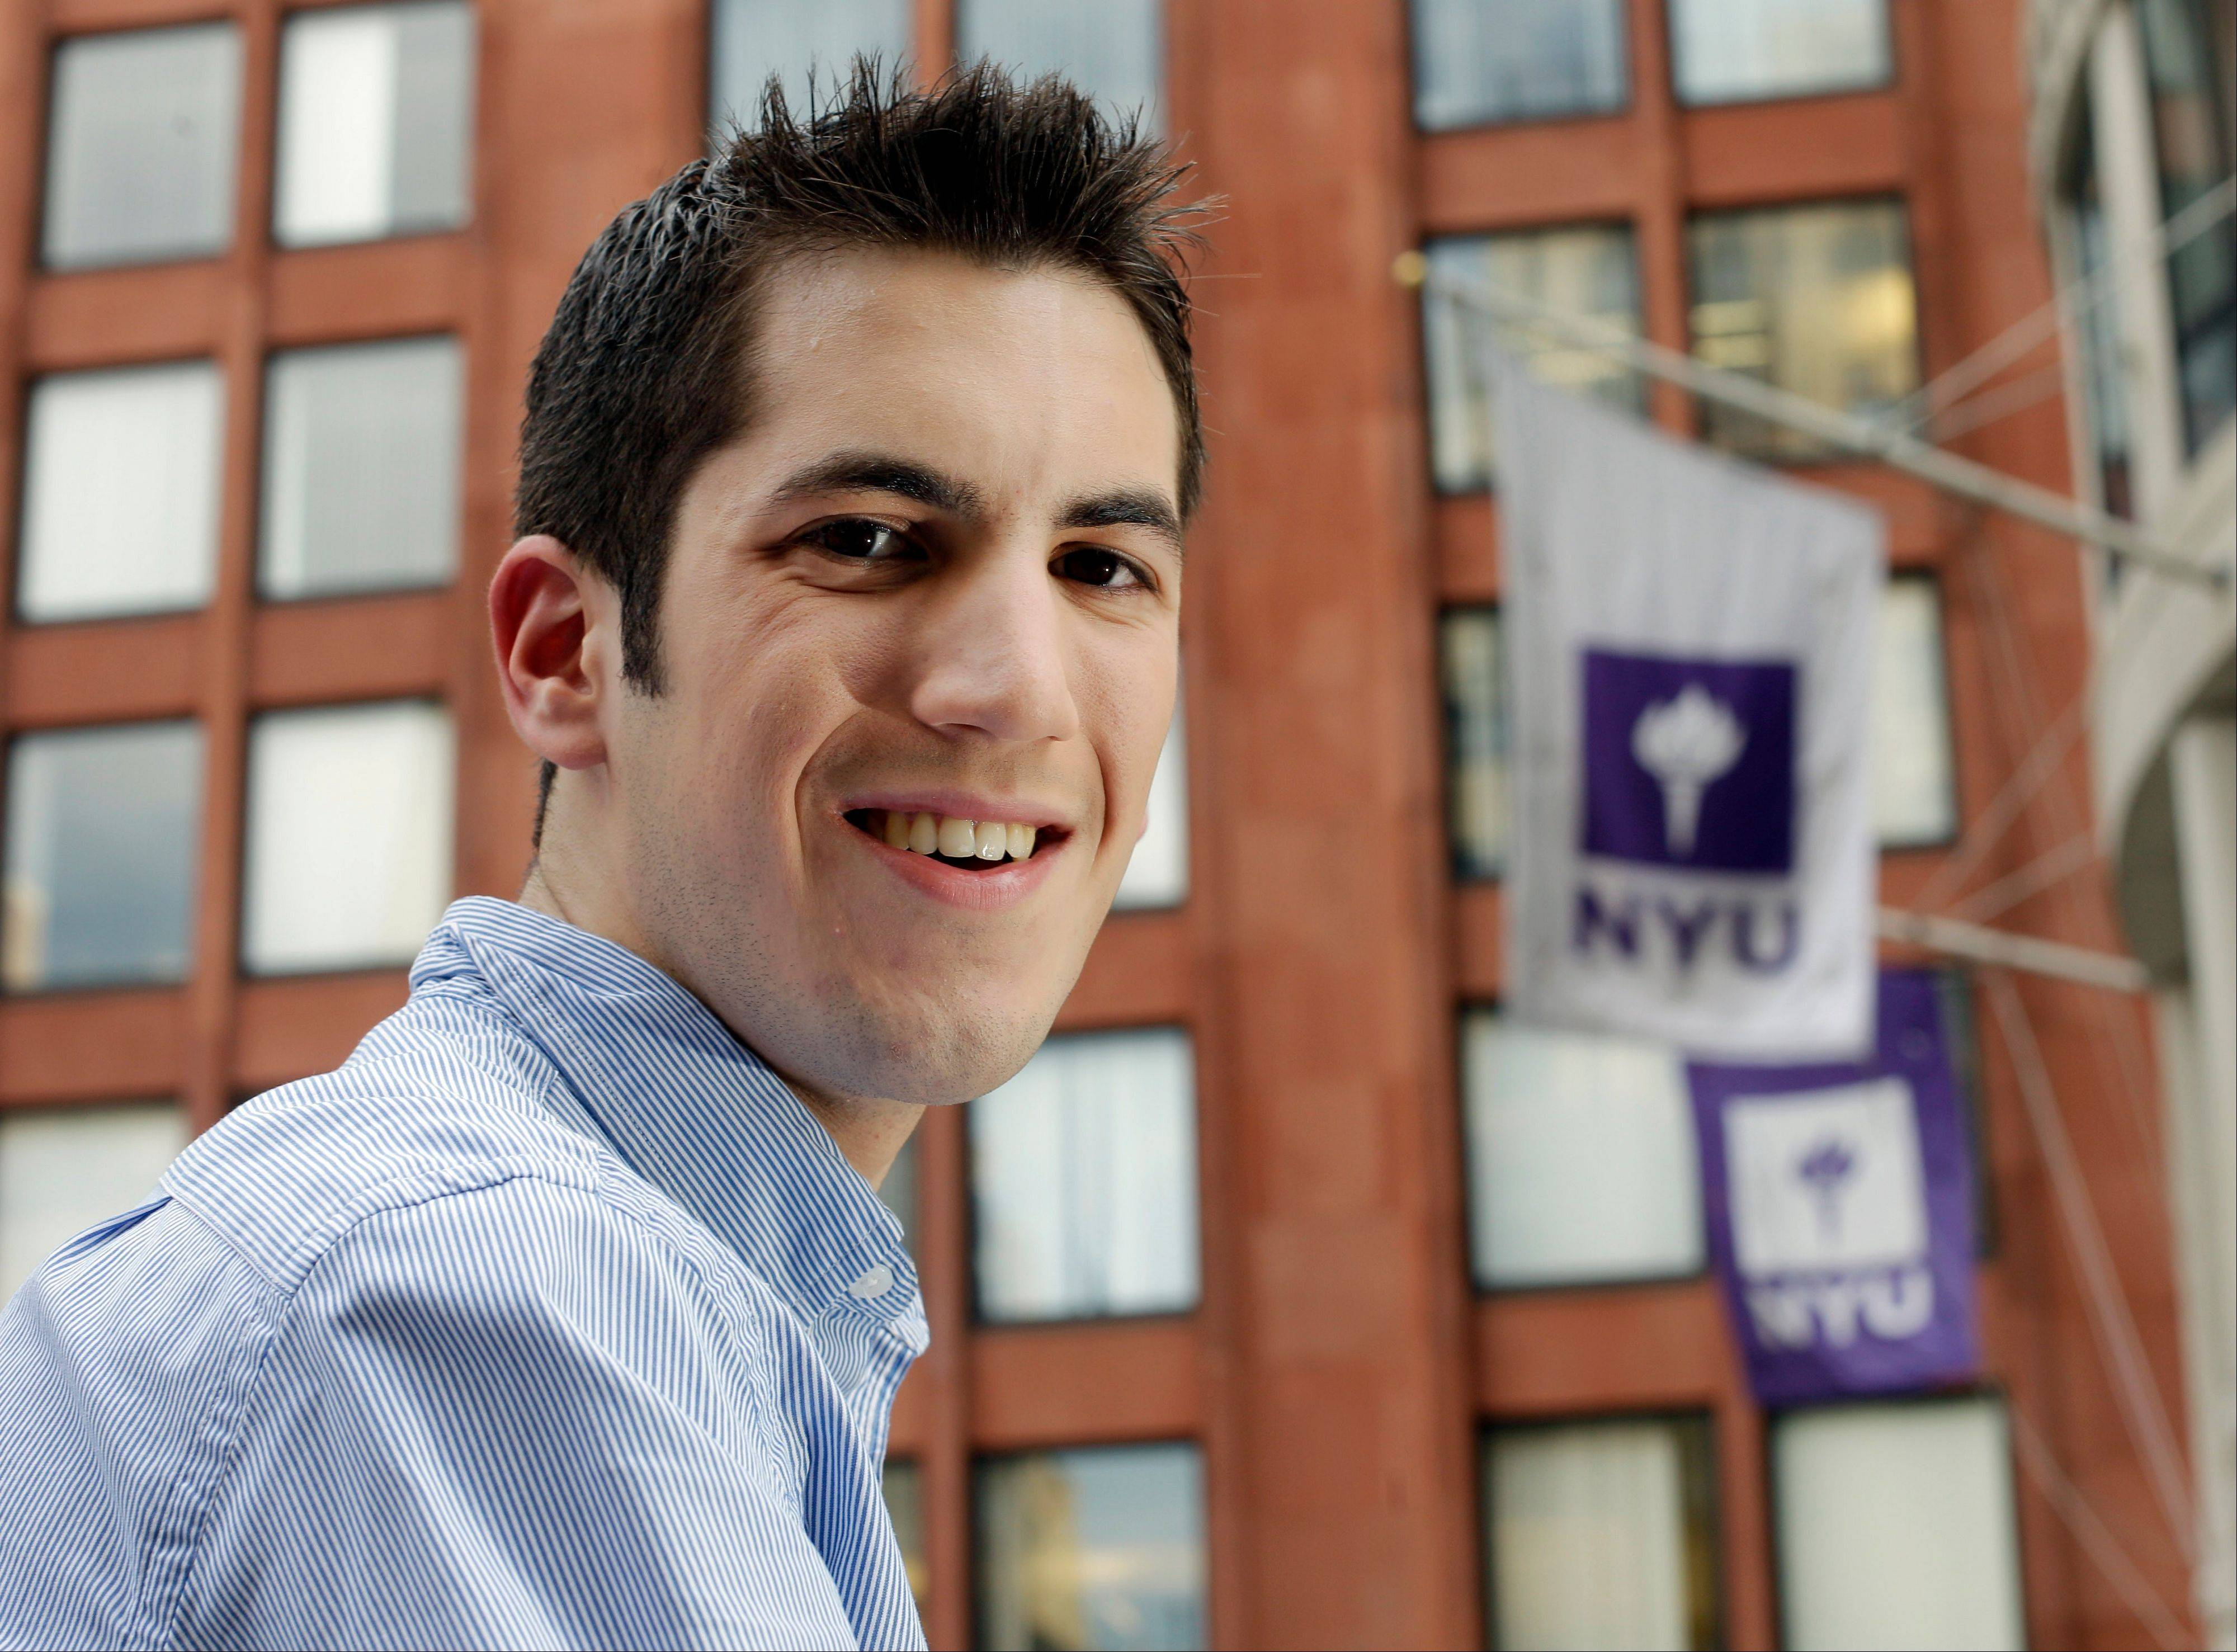 Scott Gamm, 20, a student at New York University's Stern School of Business, used his income from freelance work and blogging to obtain a Visa card and then an American Express card recently. He charges $200 or $300 on them monthly and pays every bill in full.